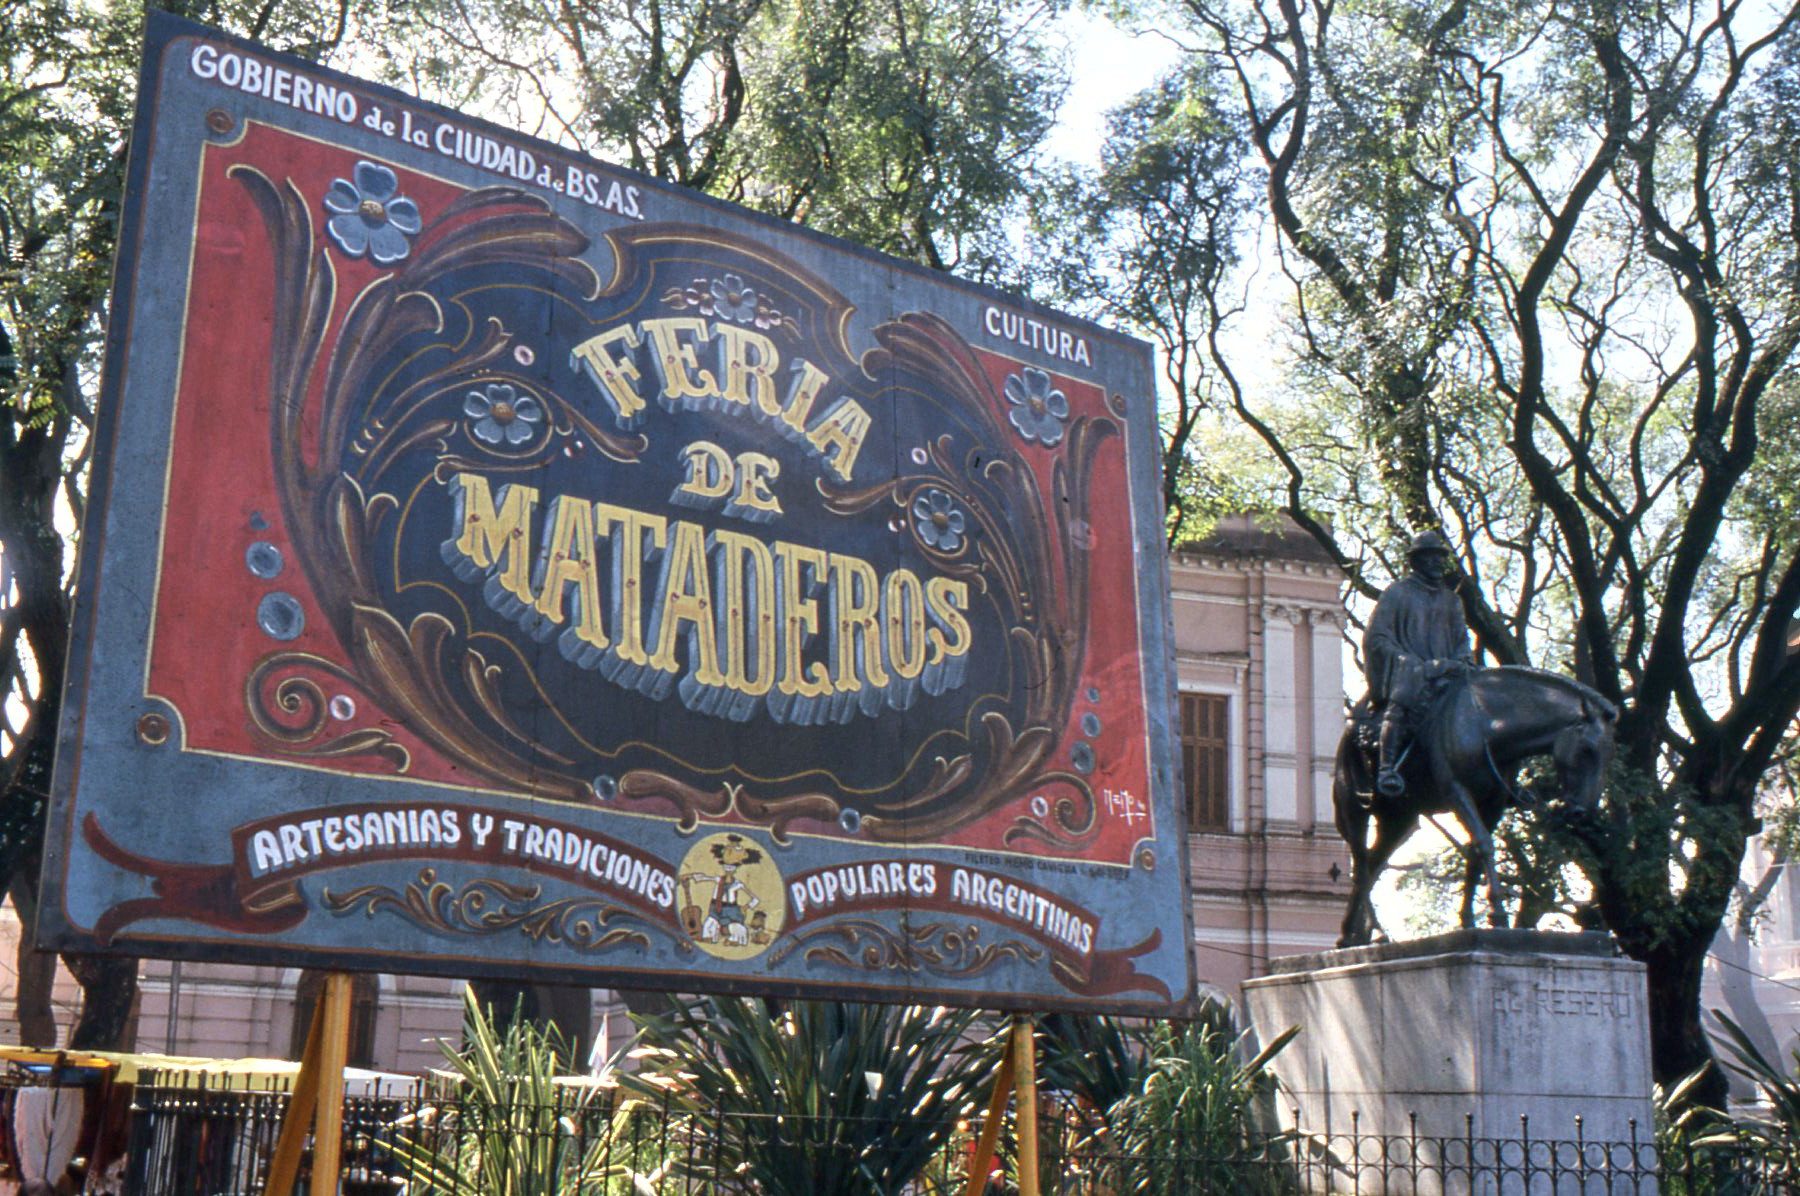 Held every week, the Feria de Mataderos links Argentines to a potent symbol of their nationhood.